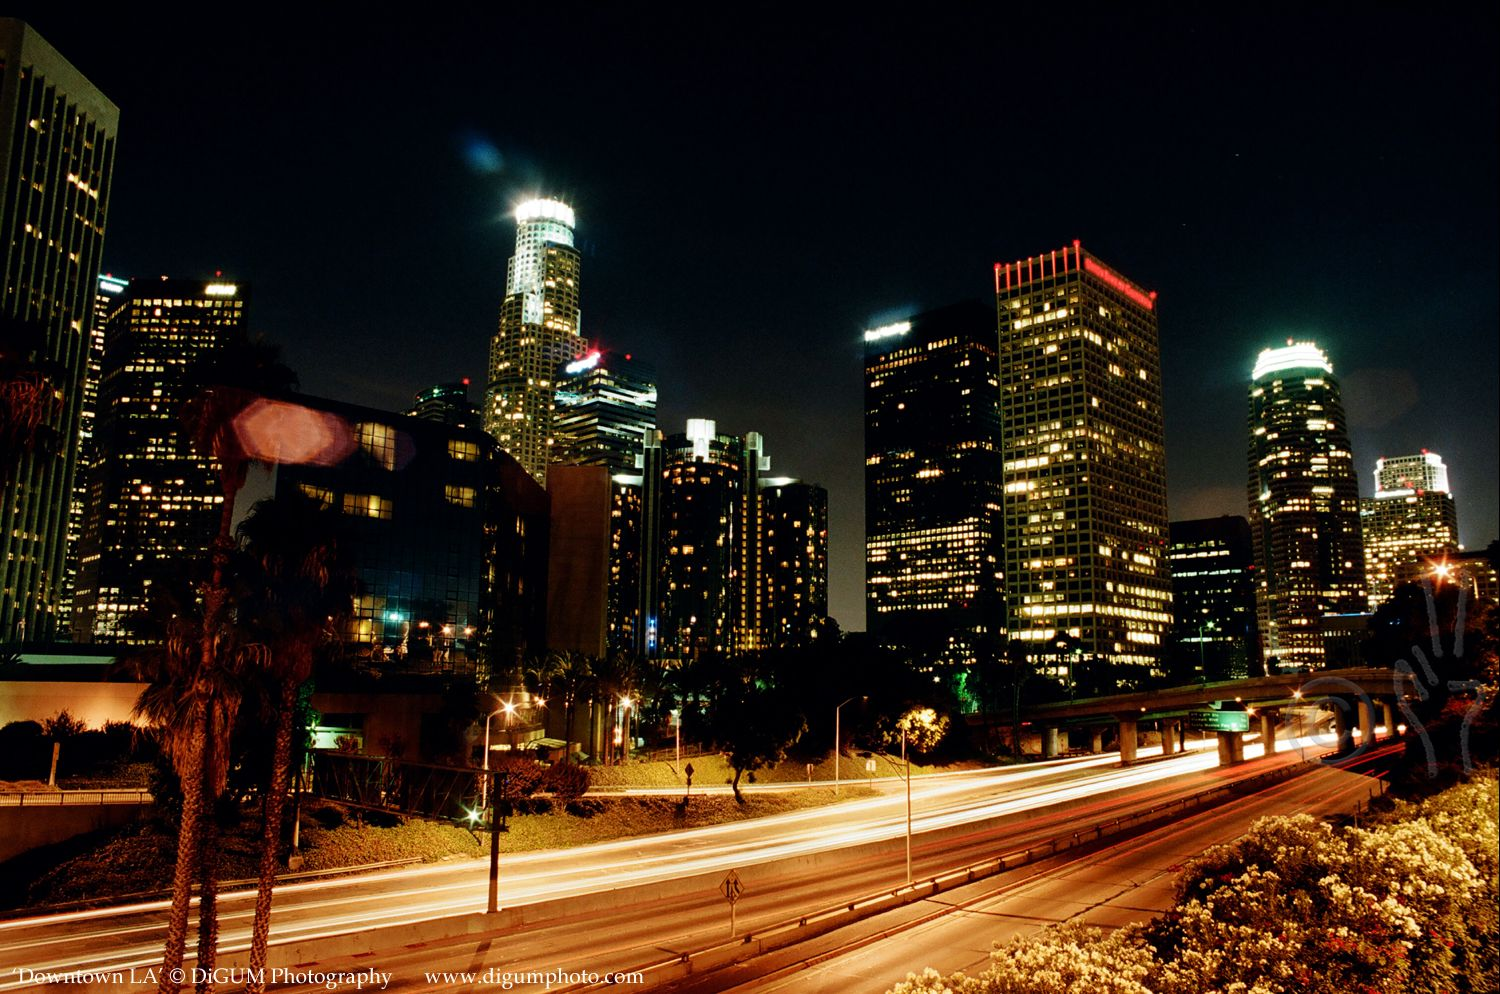 Downtown L A Matted And Signed Photograph Or Poster Etsy Downtown La Kodak Film Photographer